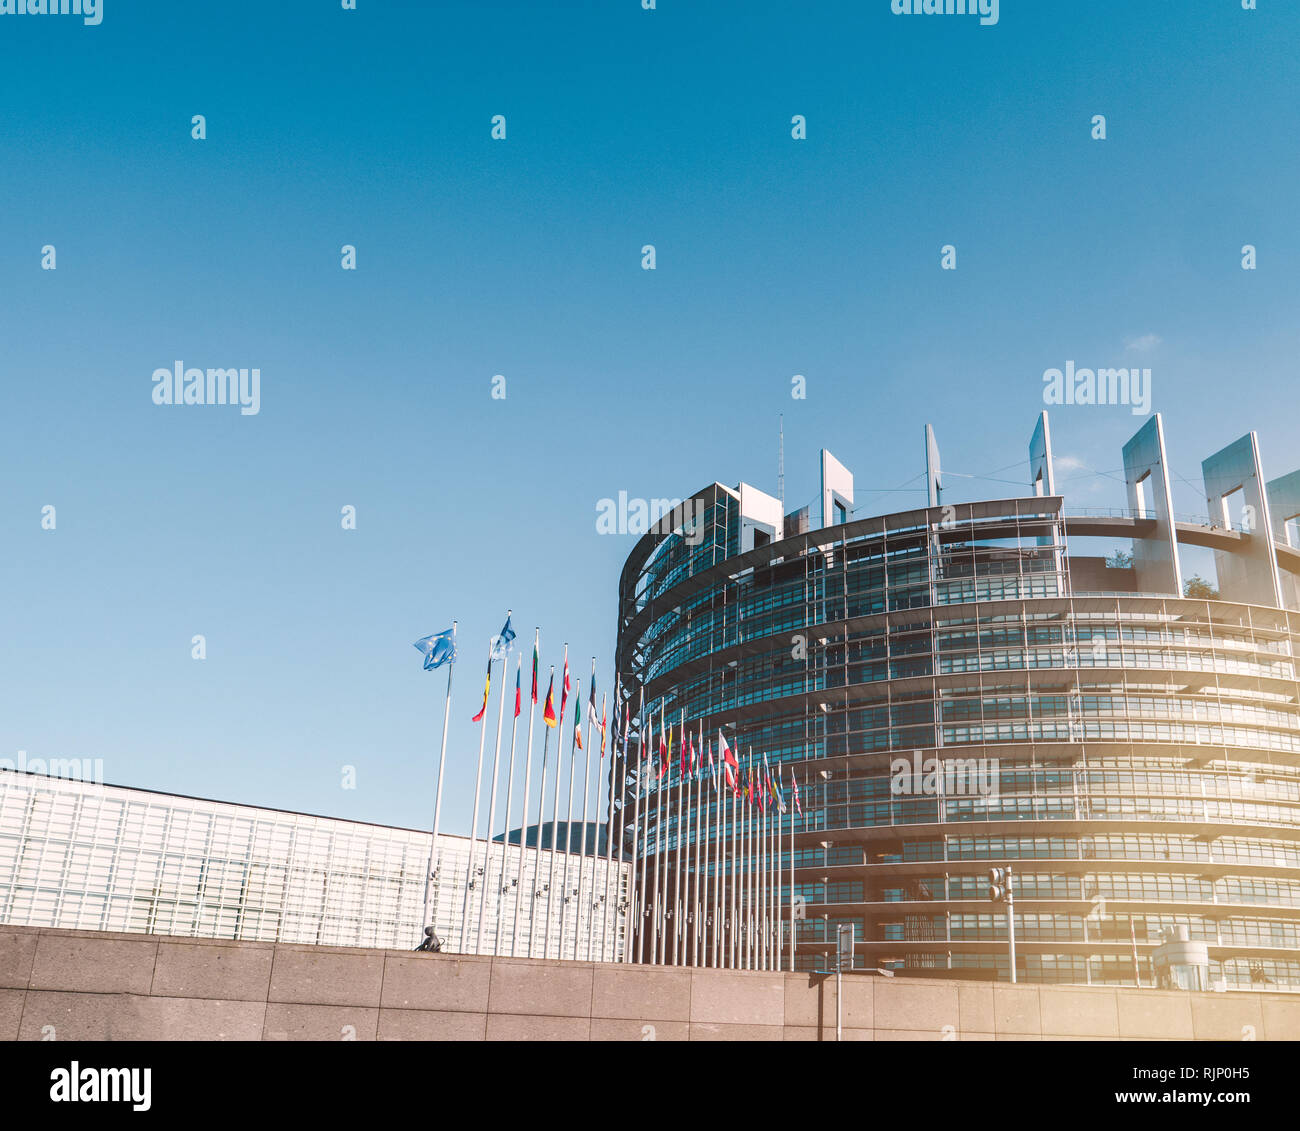 STRASBOURG, FRANCE - SEP 3, 2017: Exterior shot of contemporary building of European parliament with flags waving under blue sky, France - large copy space on the blue sky - Stock Image